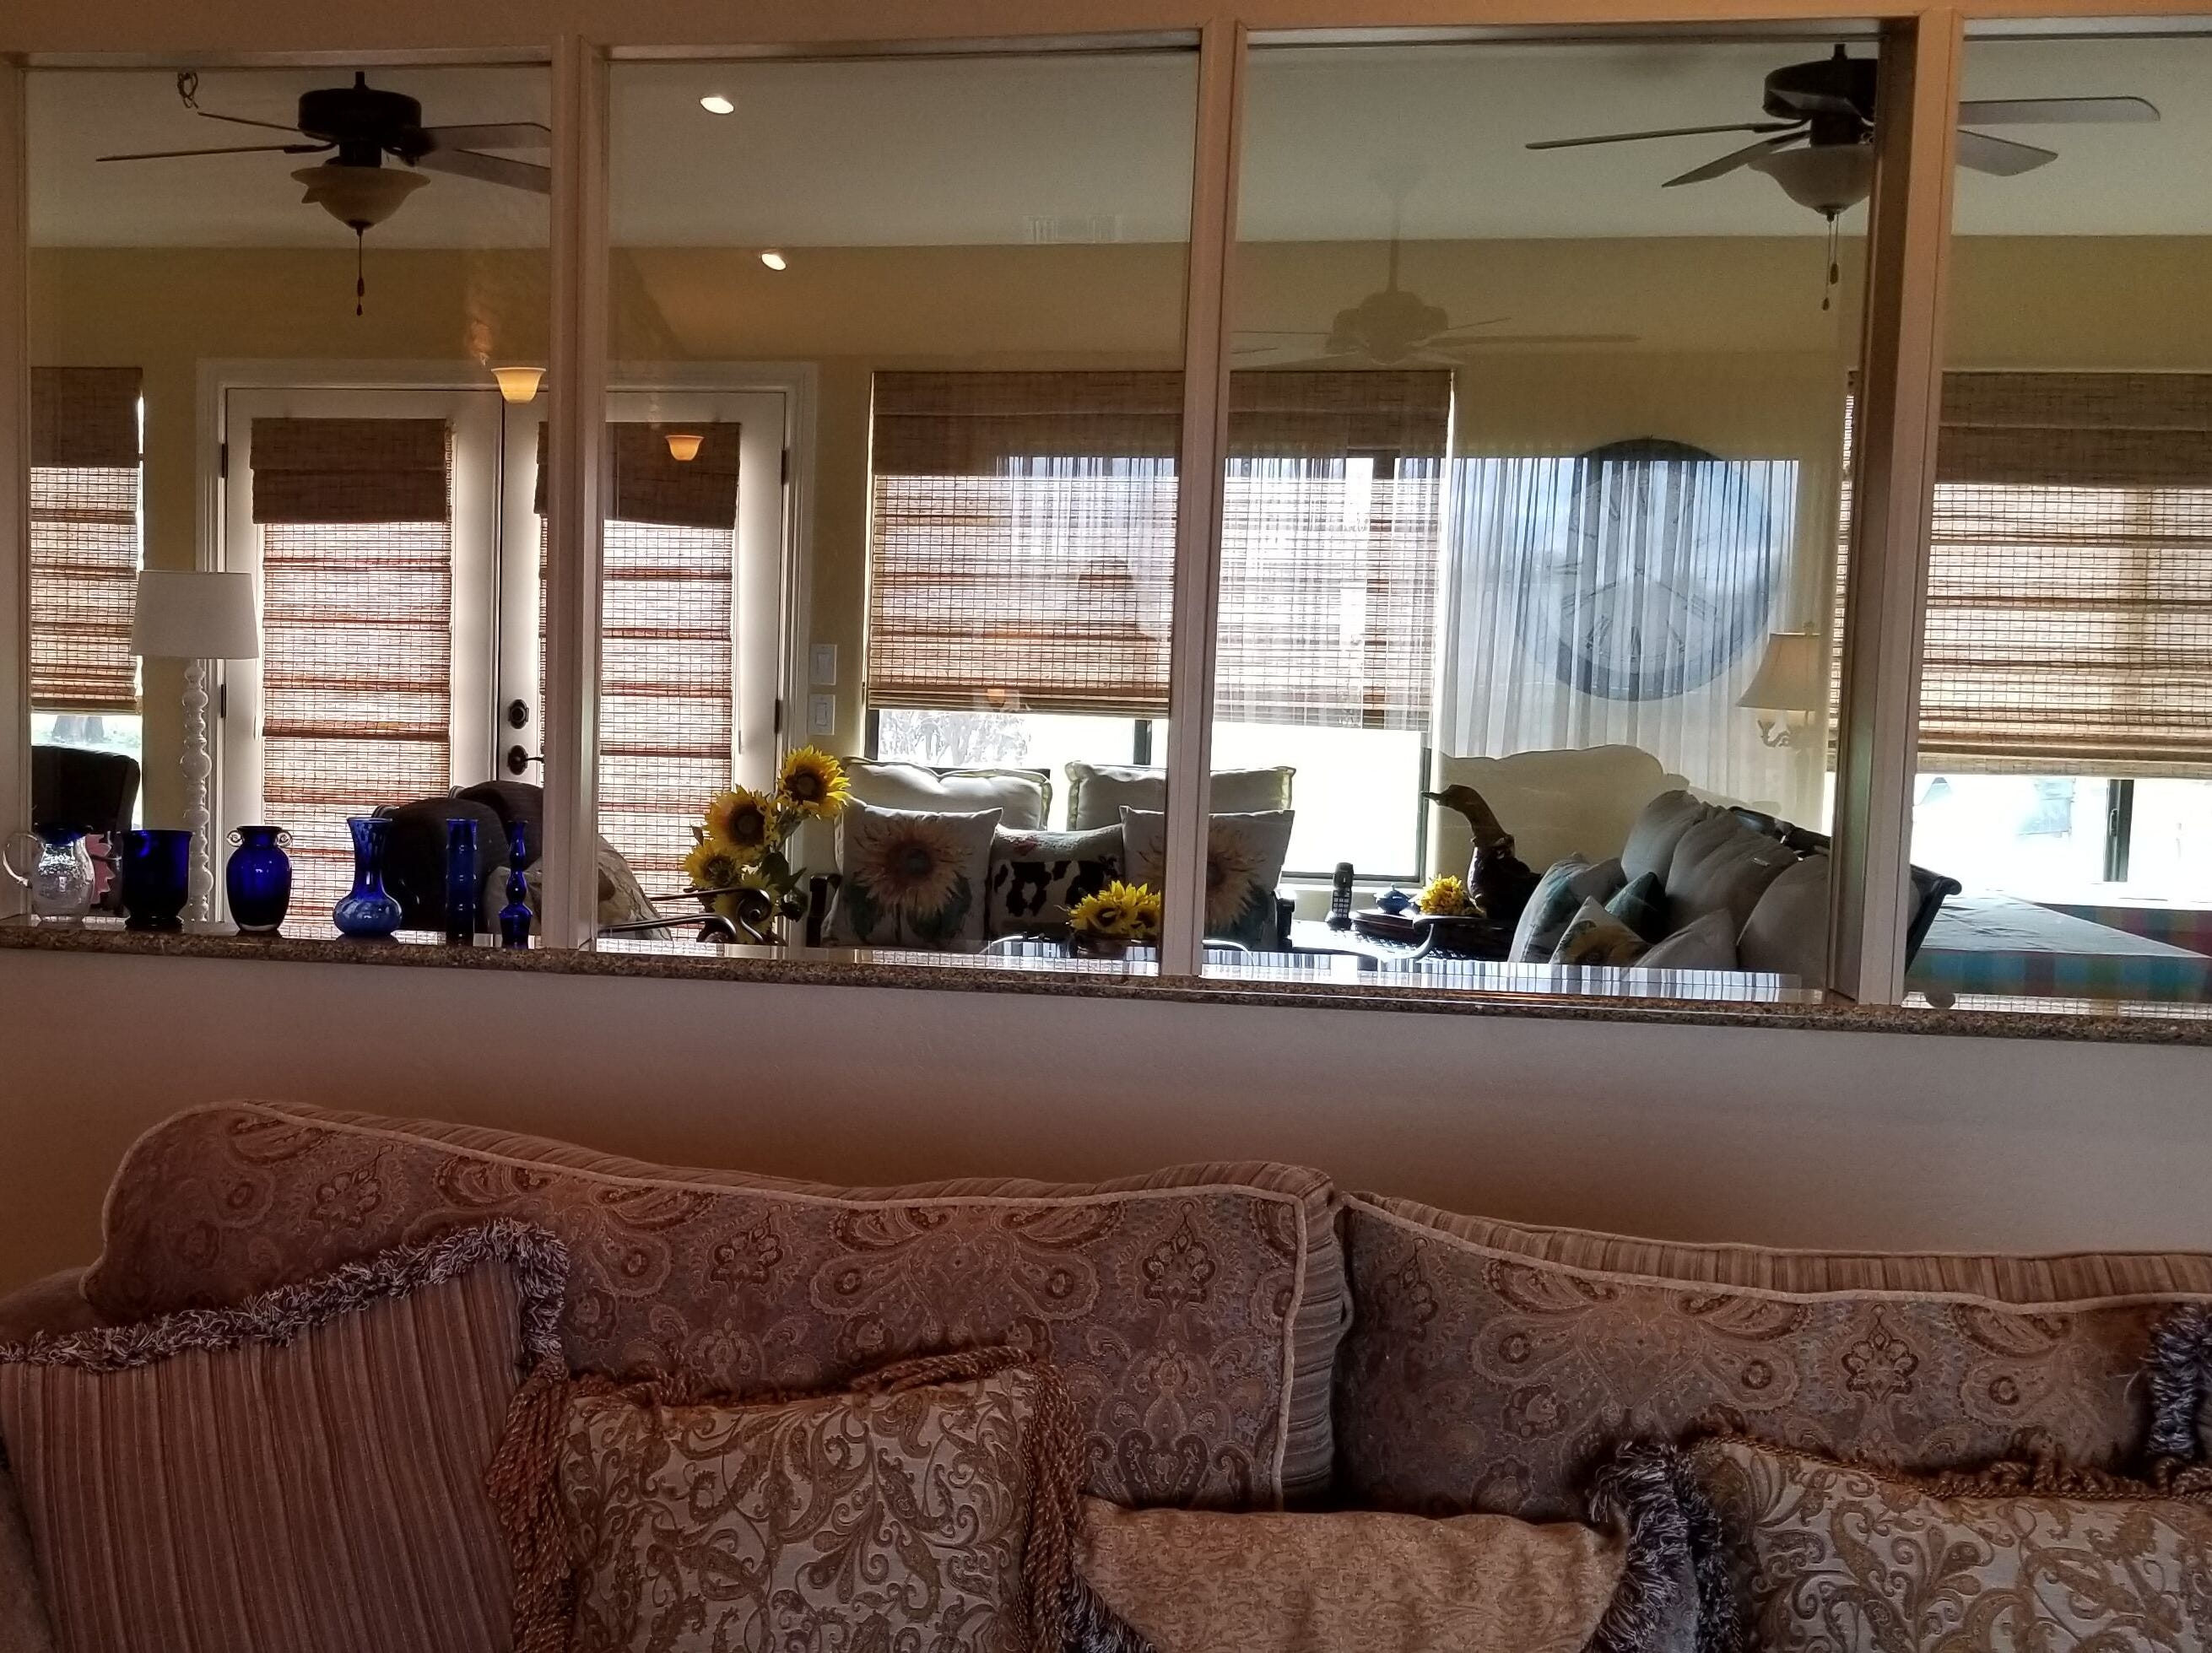 A patio was enclosed to create an Arizona room. A pony wall topped by glass panels separate the sun room and living room.